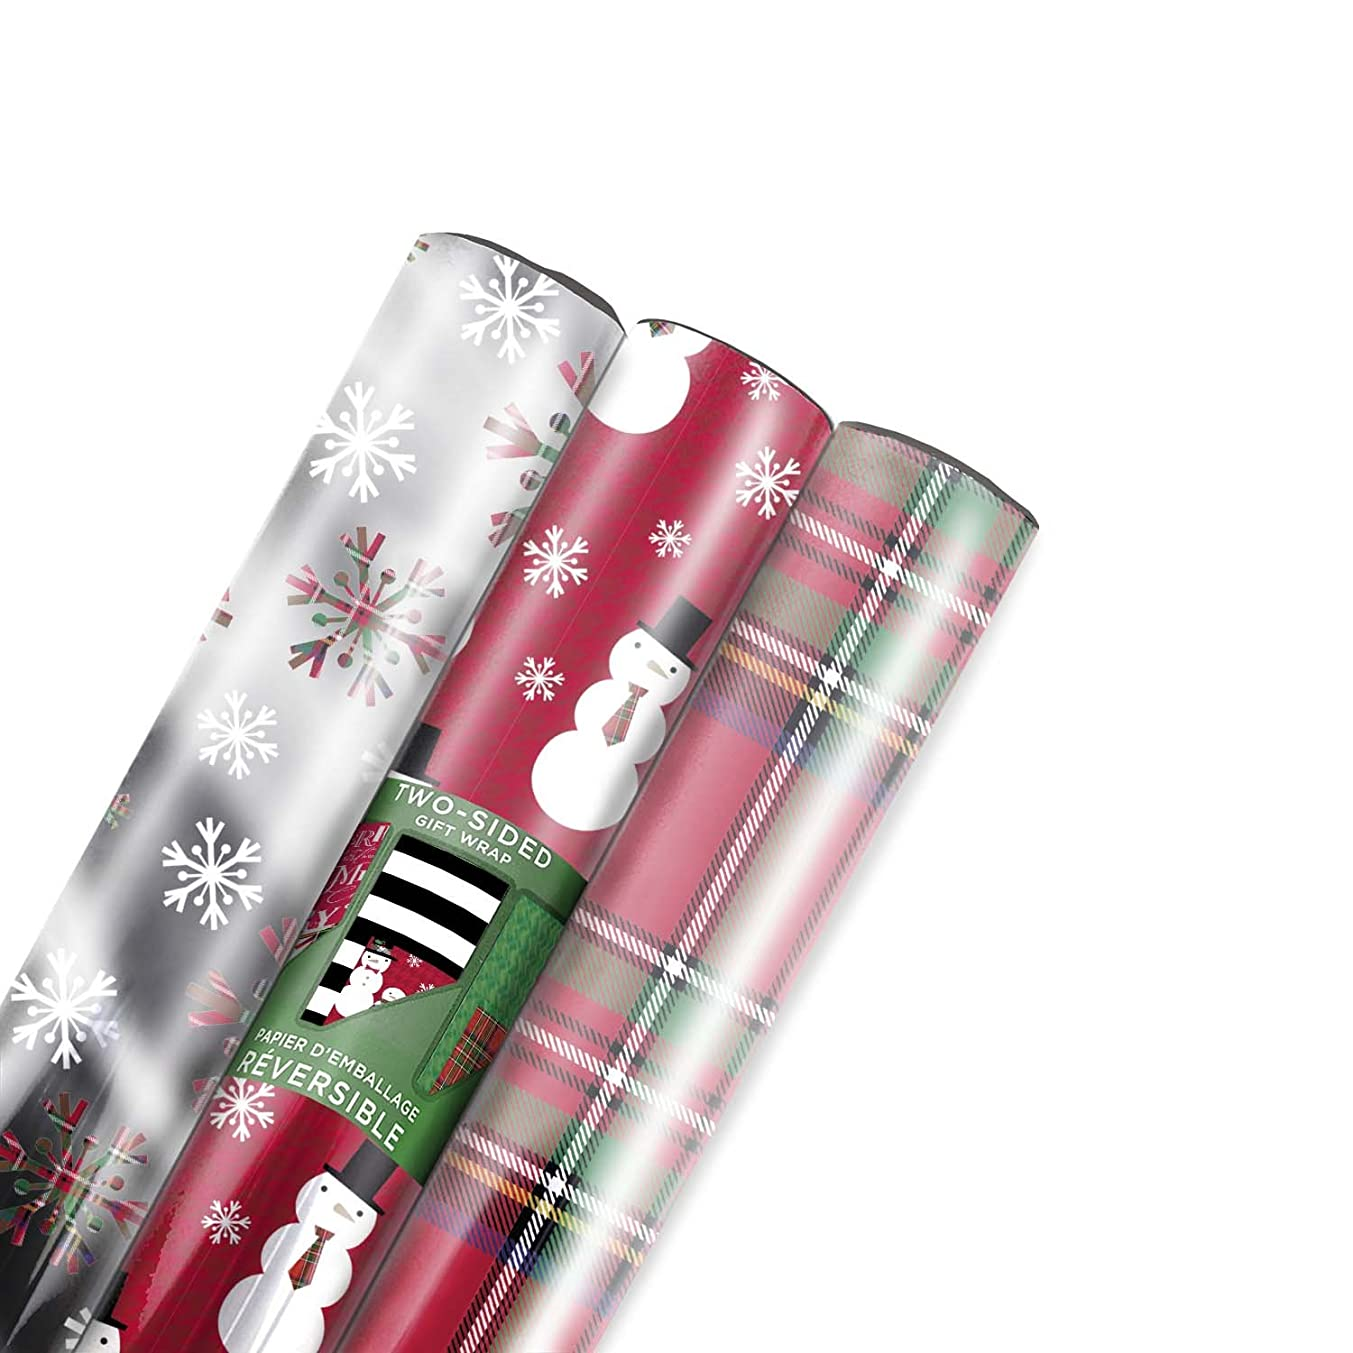 Hallmark Reversible Christmas Wrapping Paper Bundle, Contemporary Foil (Pack of 3, 60 sq. ft. ttl.)